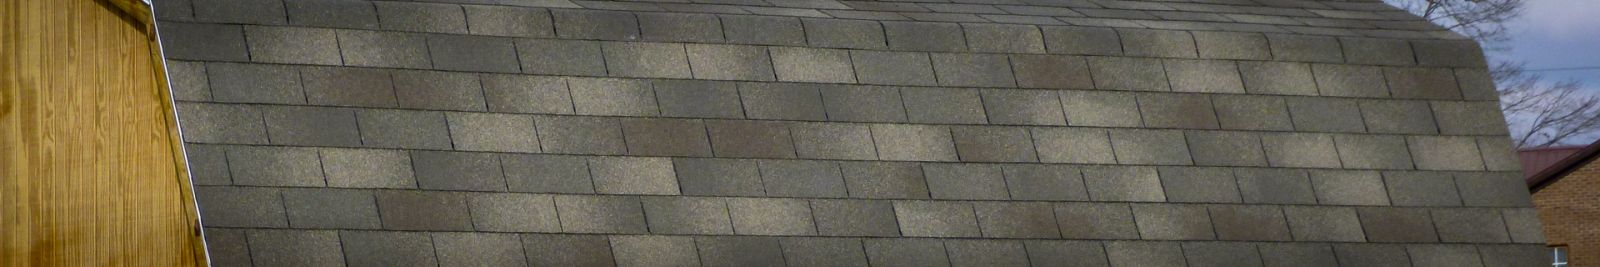 Tab shingle roofing for custom sheds in KY and TN